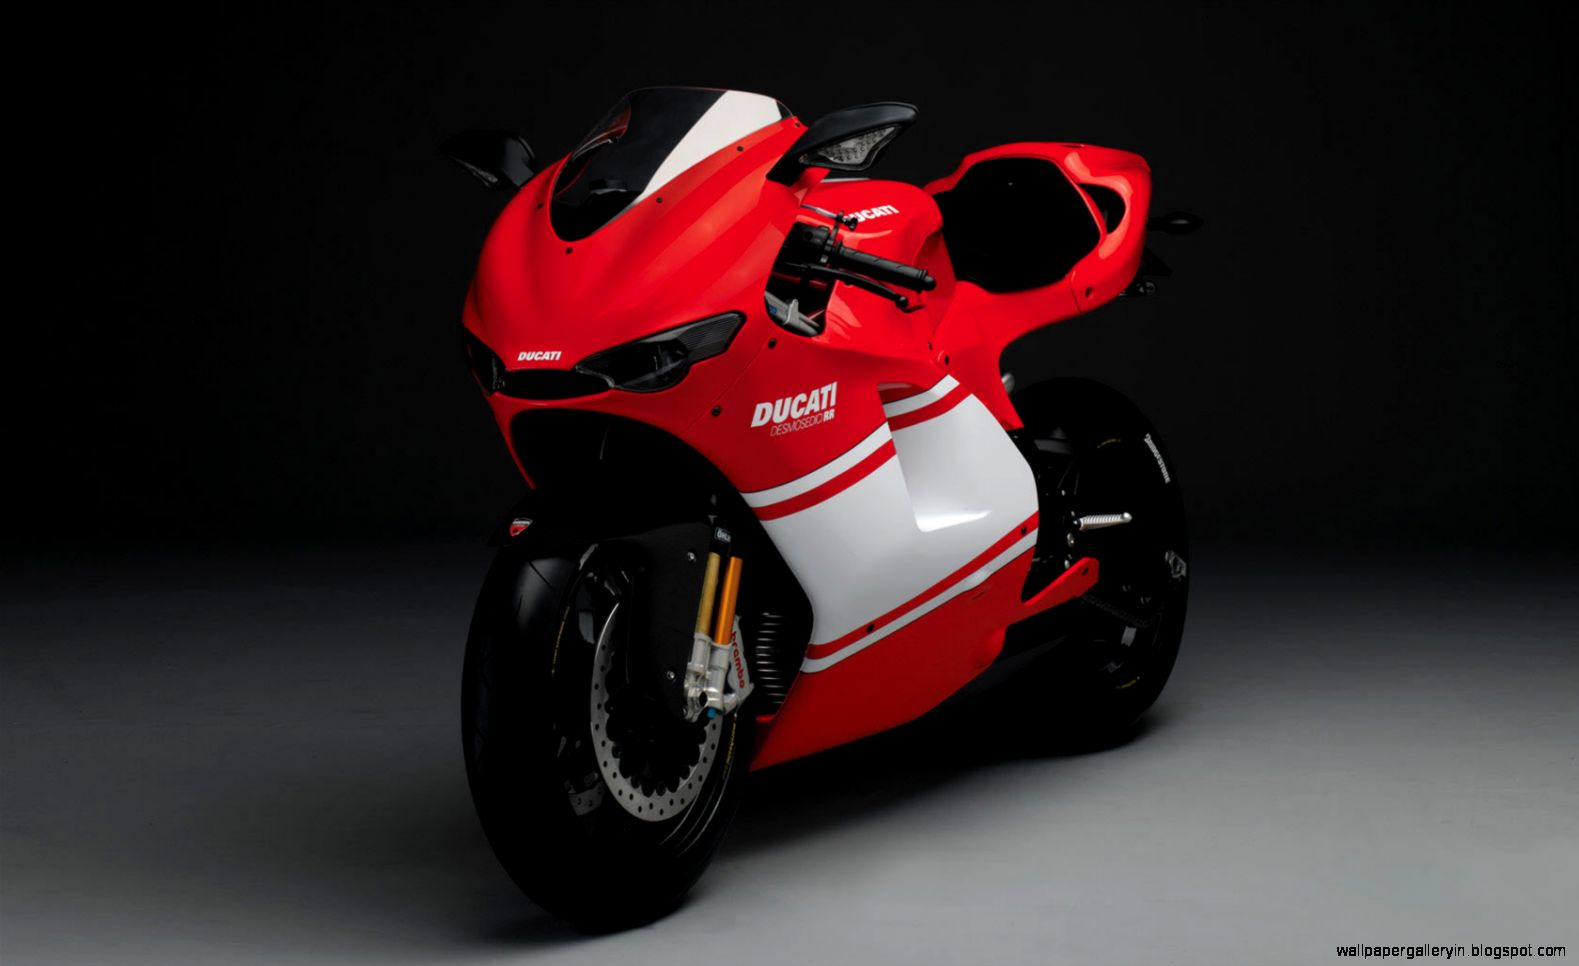 New Ducati Motorcycle Cool Wallpaper Desktop  Free High